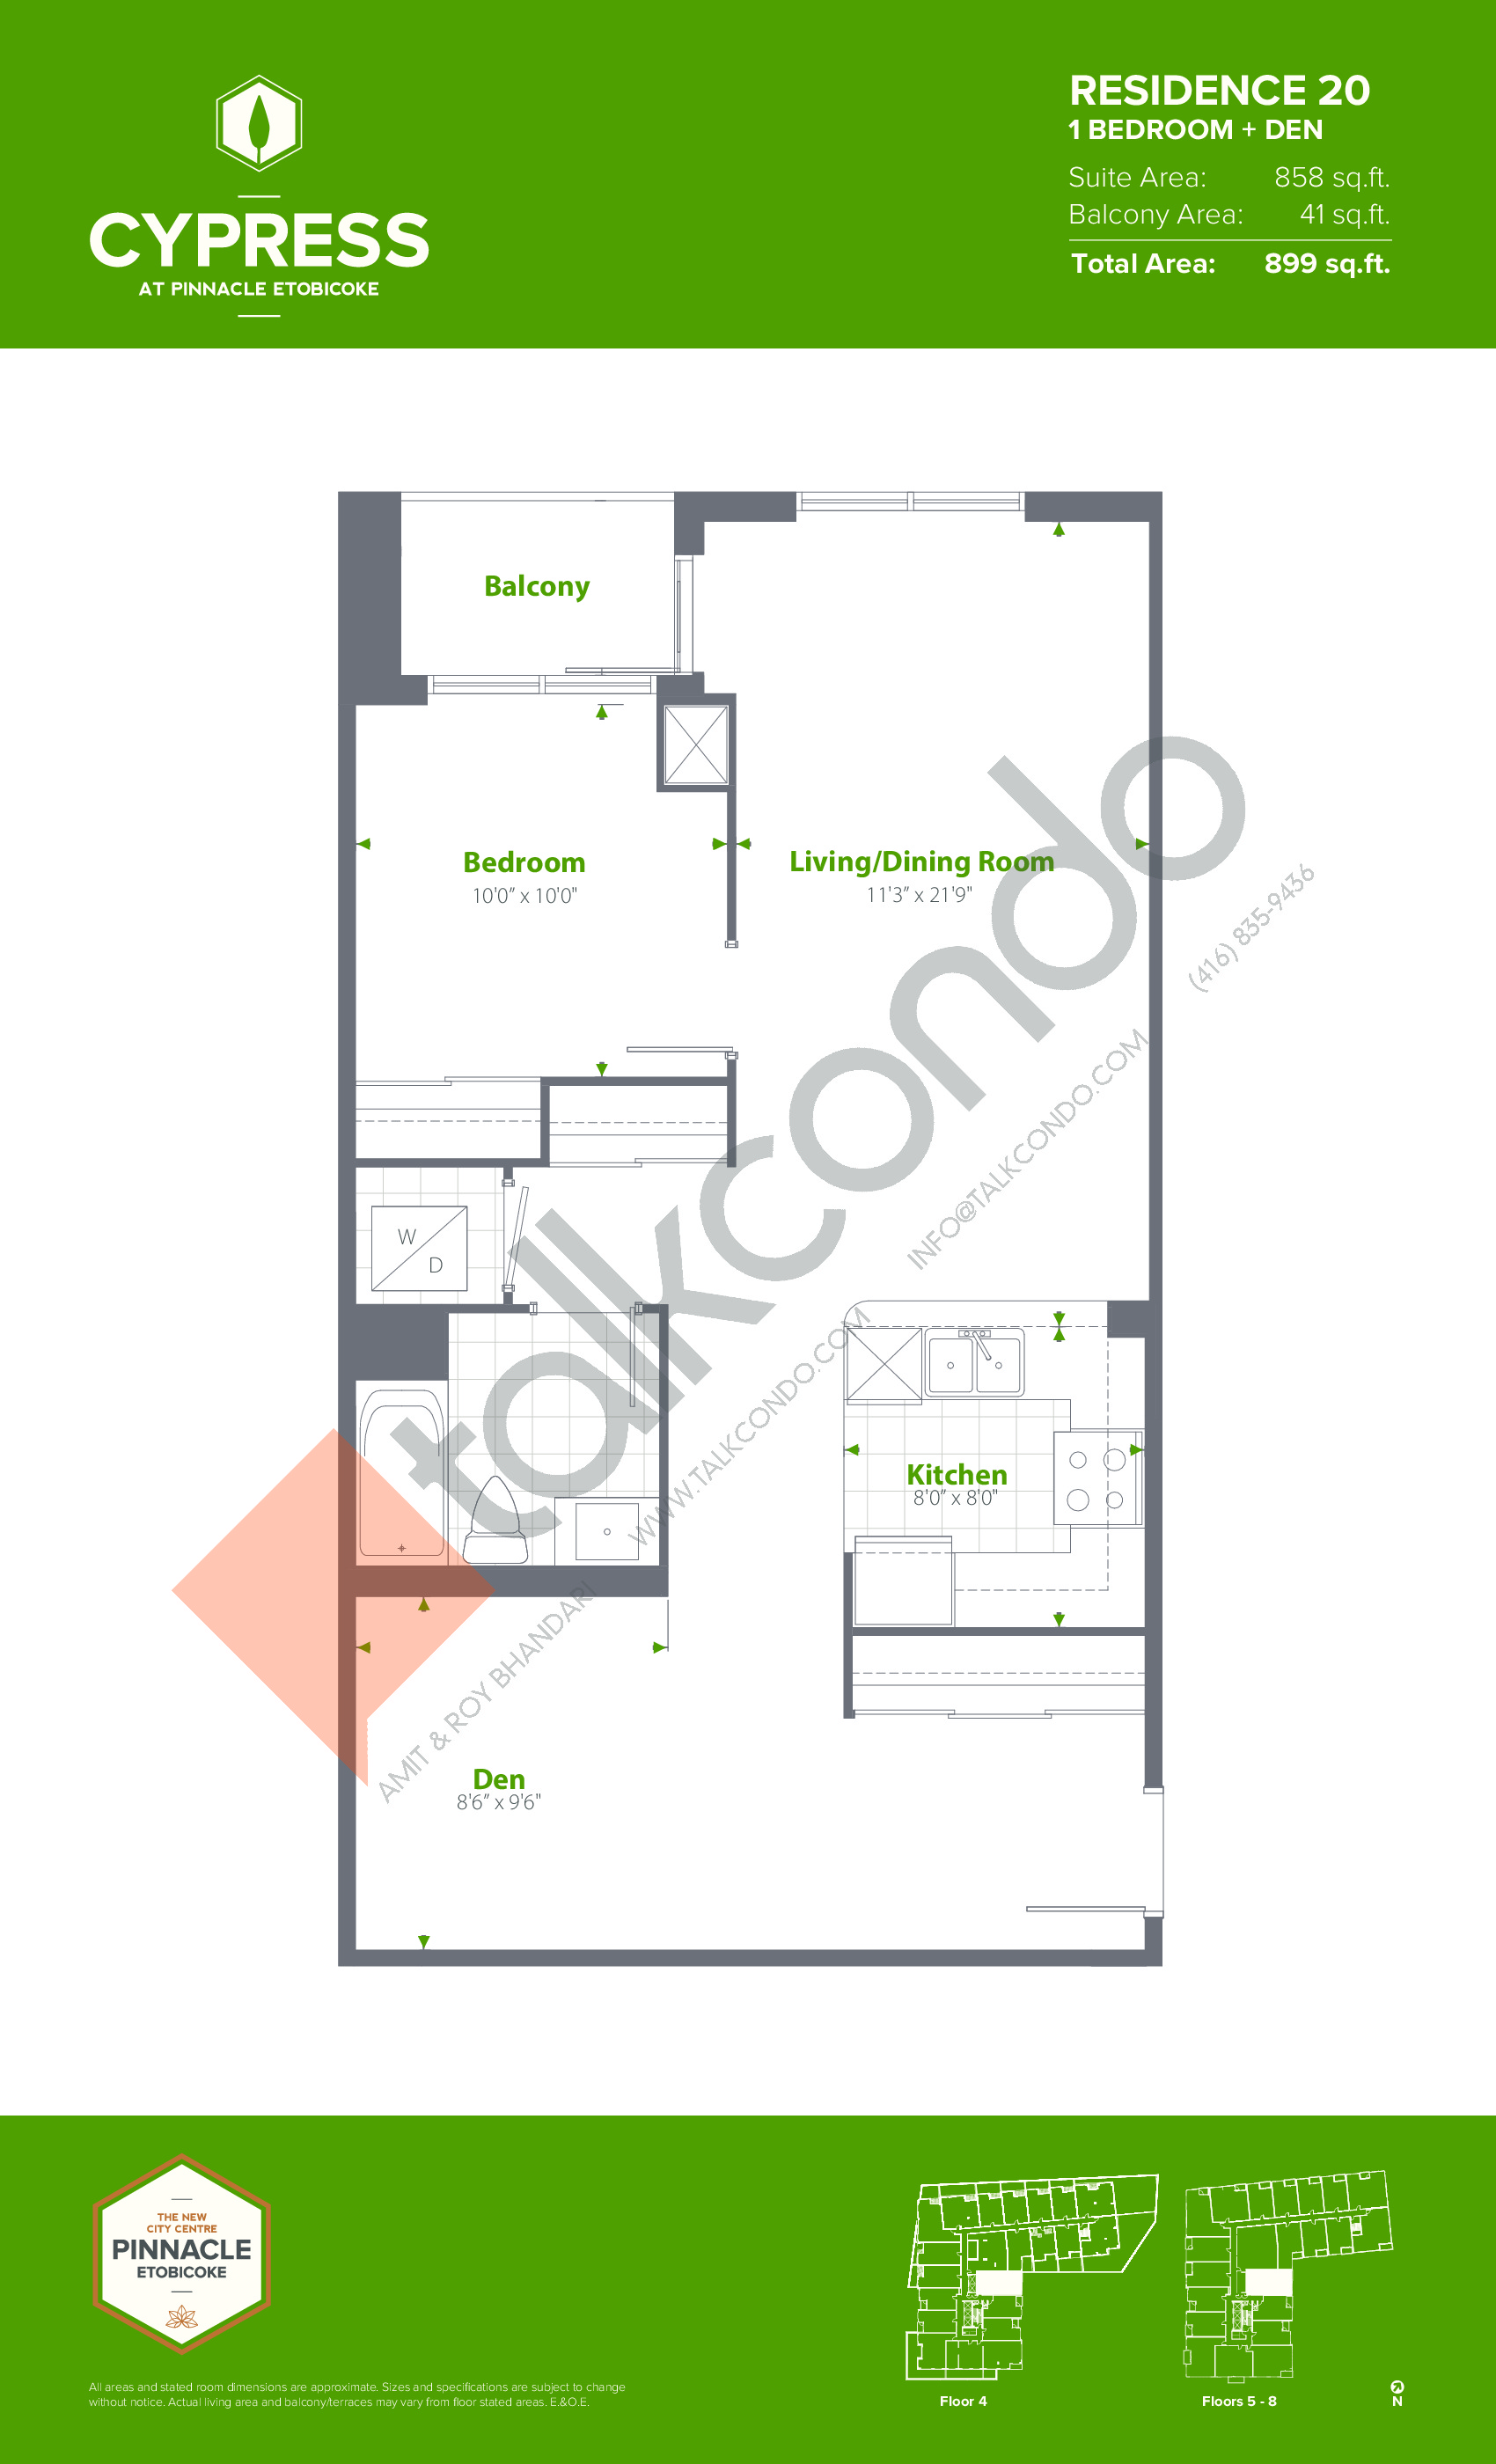 Residence 20 (Podium) Floor Plan at Cypress at Pinnacle Etobicoke - 858 sq.ft